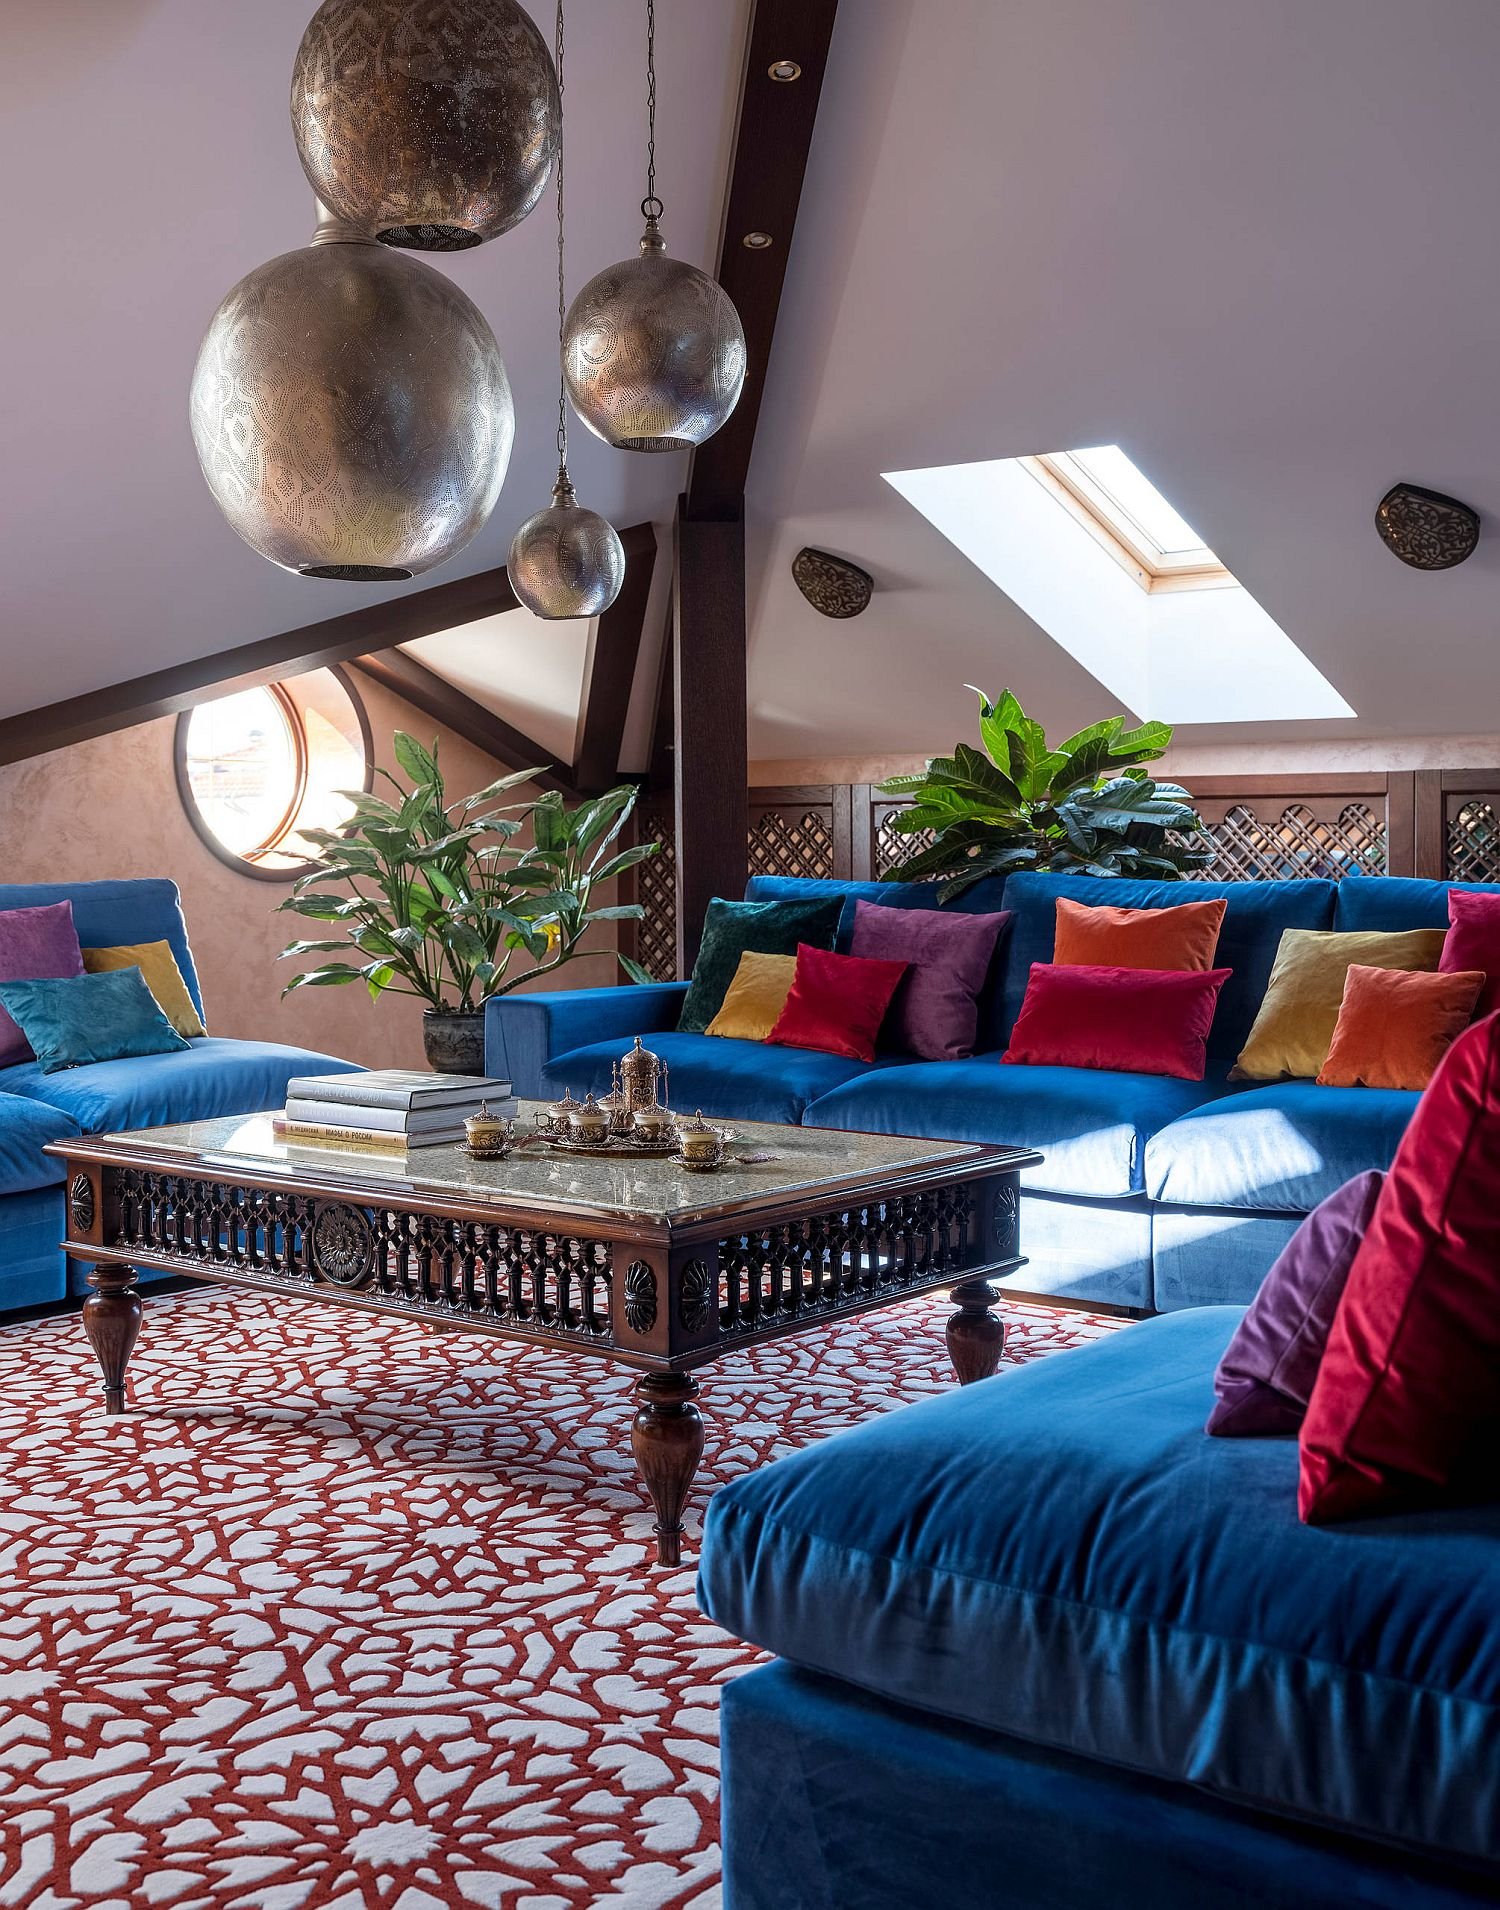 Attic boho chic living room drenched in plenty of bright color